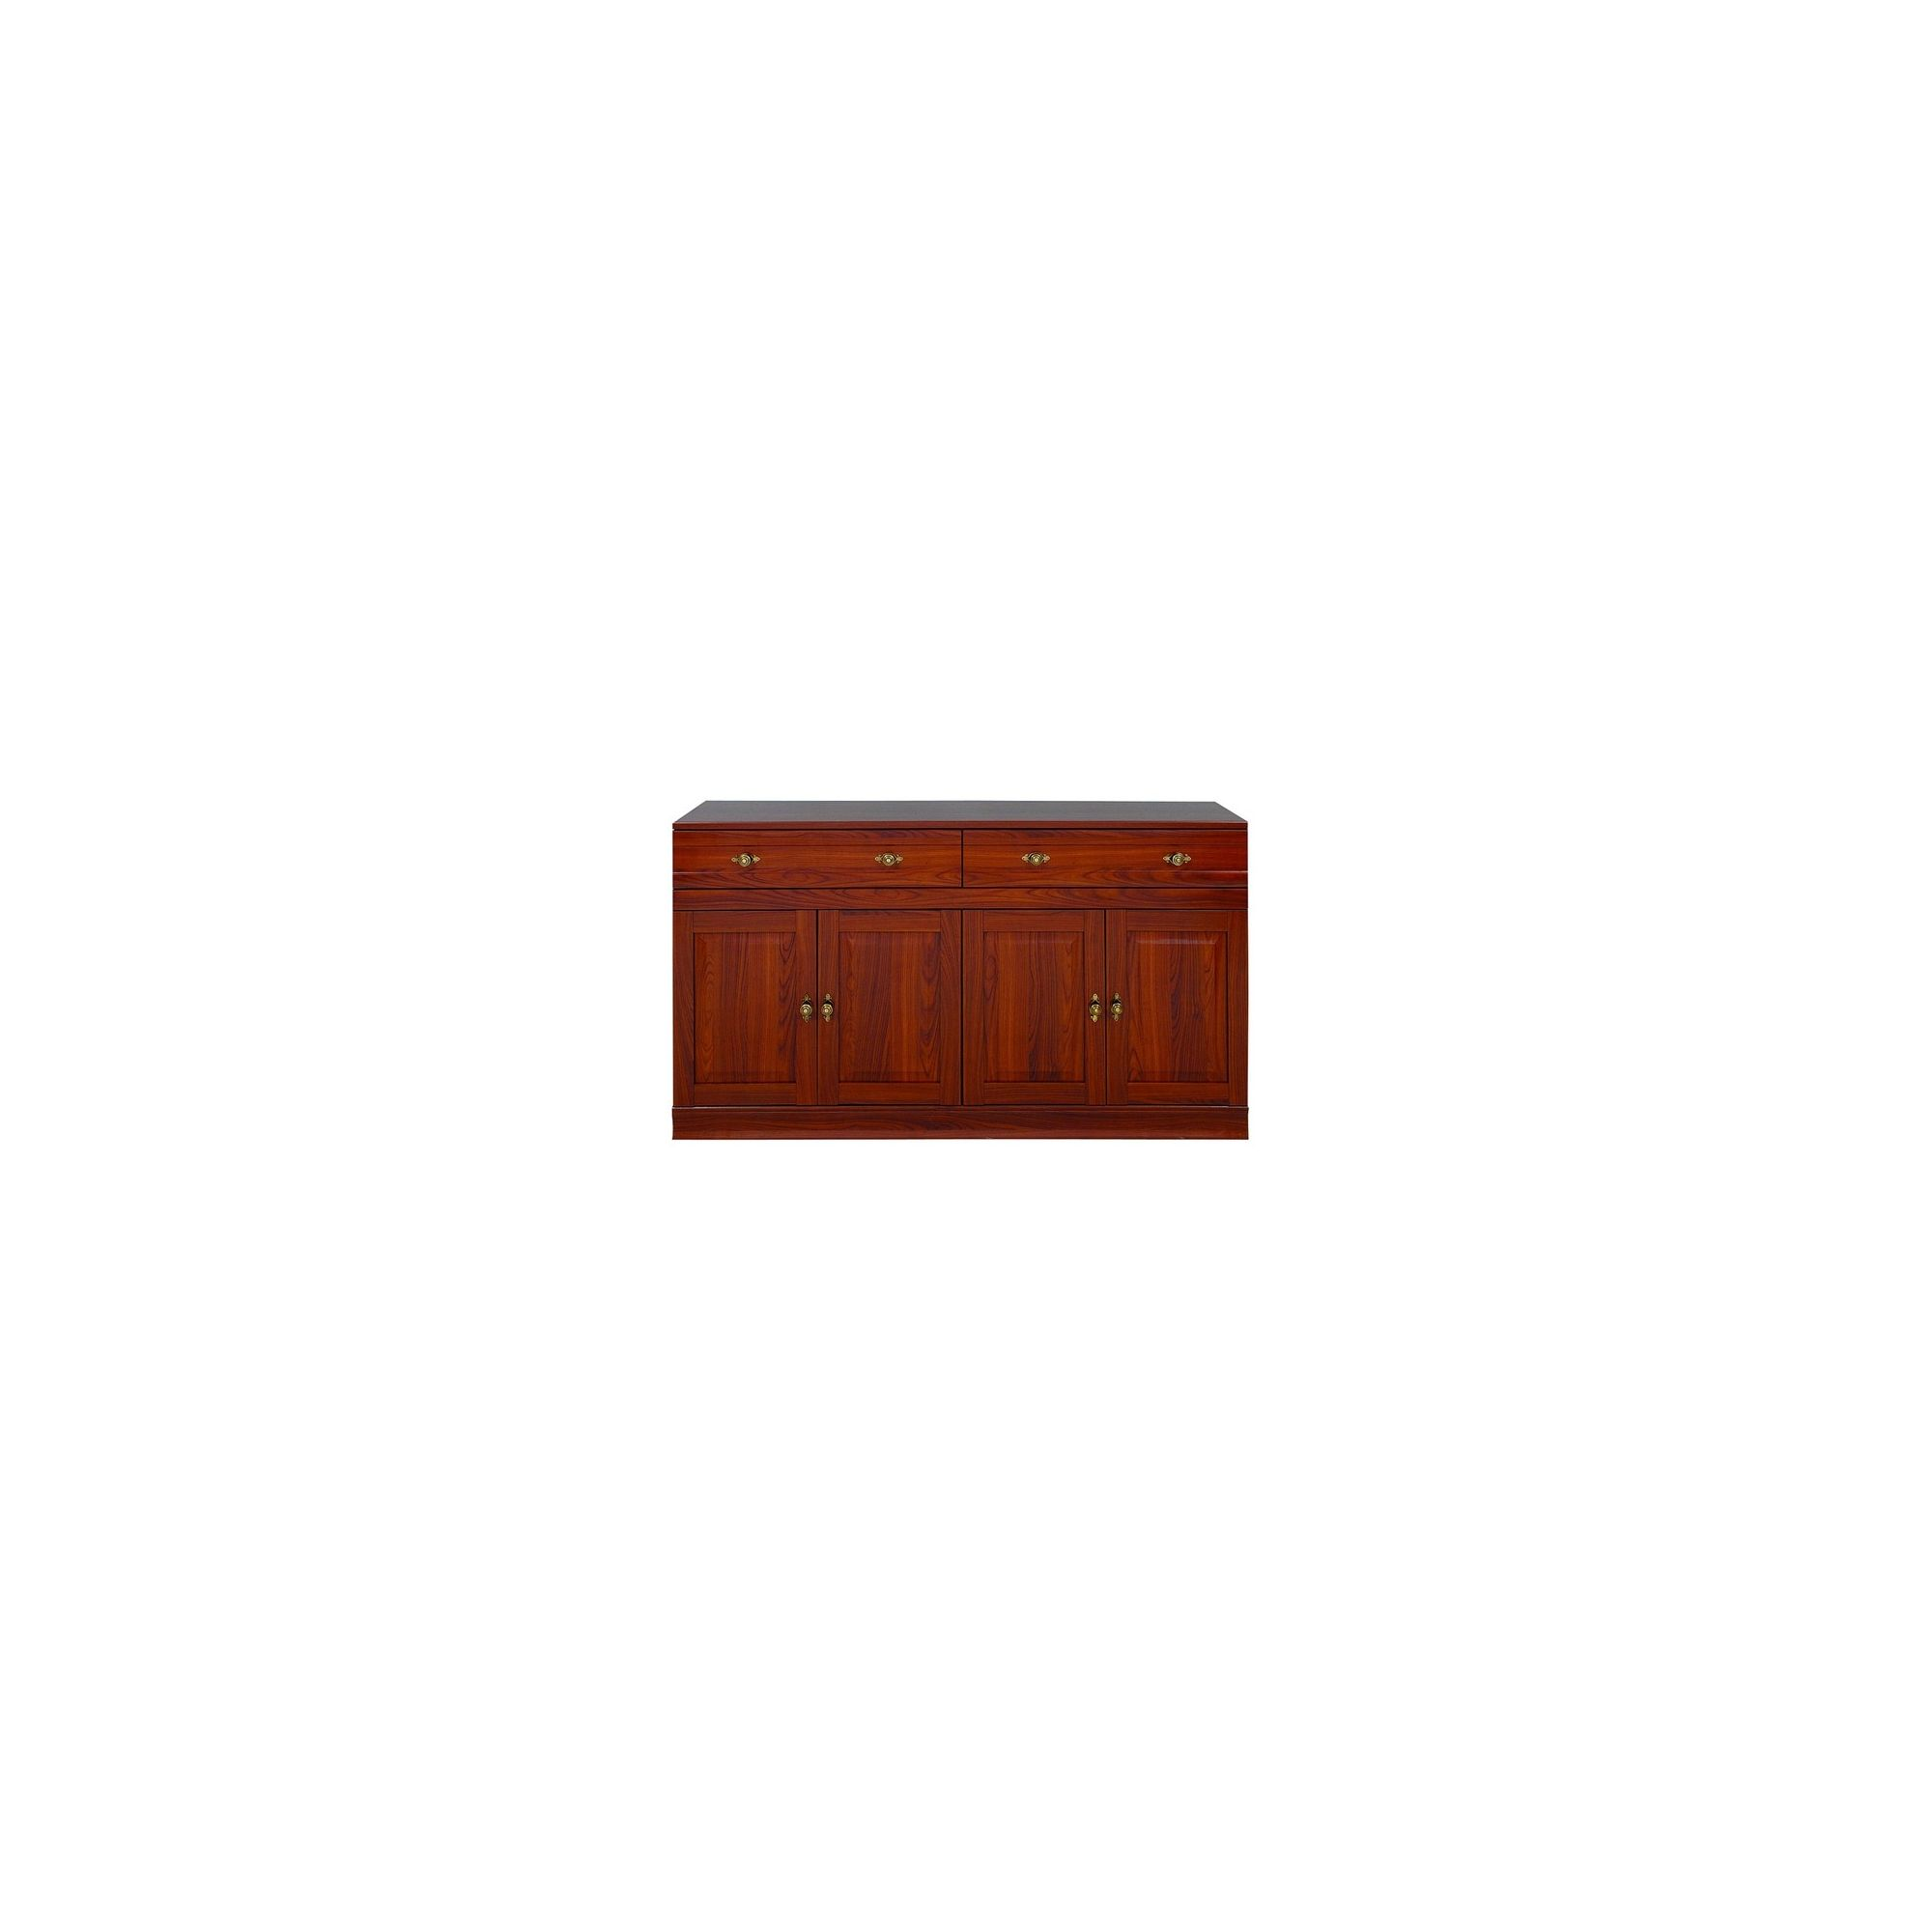 Caxton Lincoln 4 Door / 2 Drawer Sideboard in Cherry at Tesco Direct